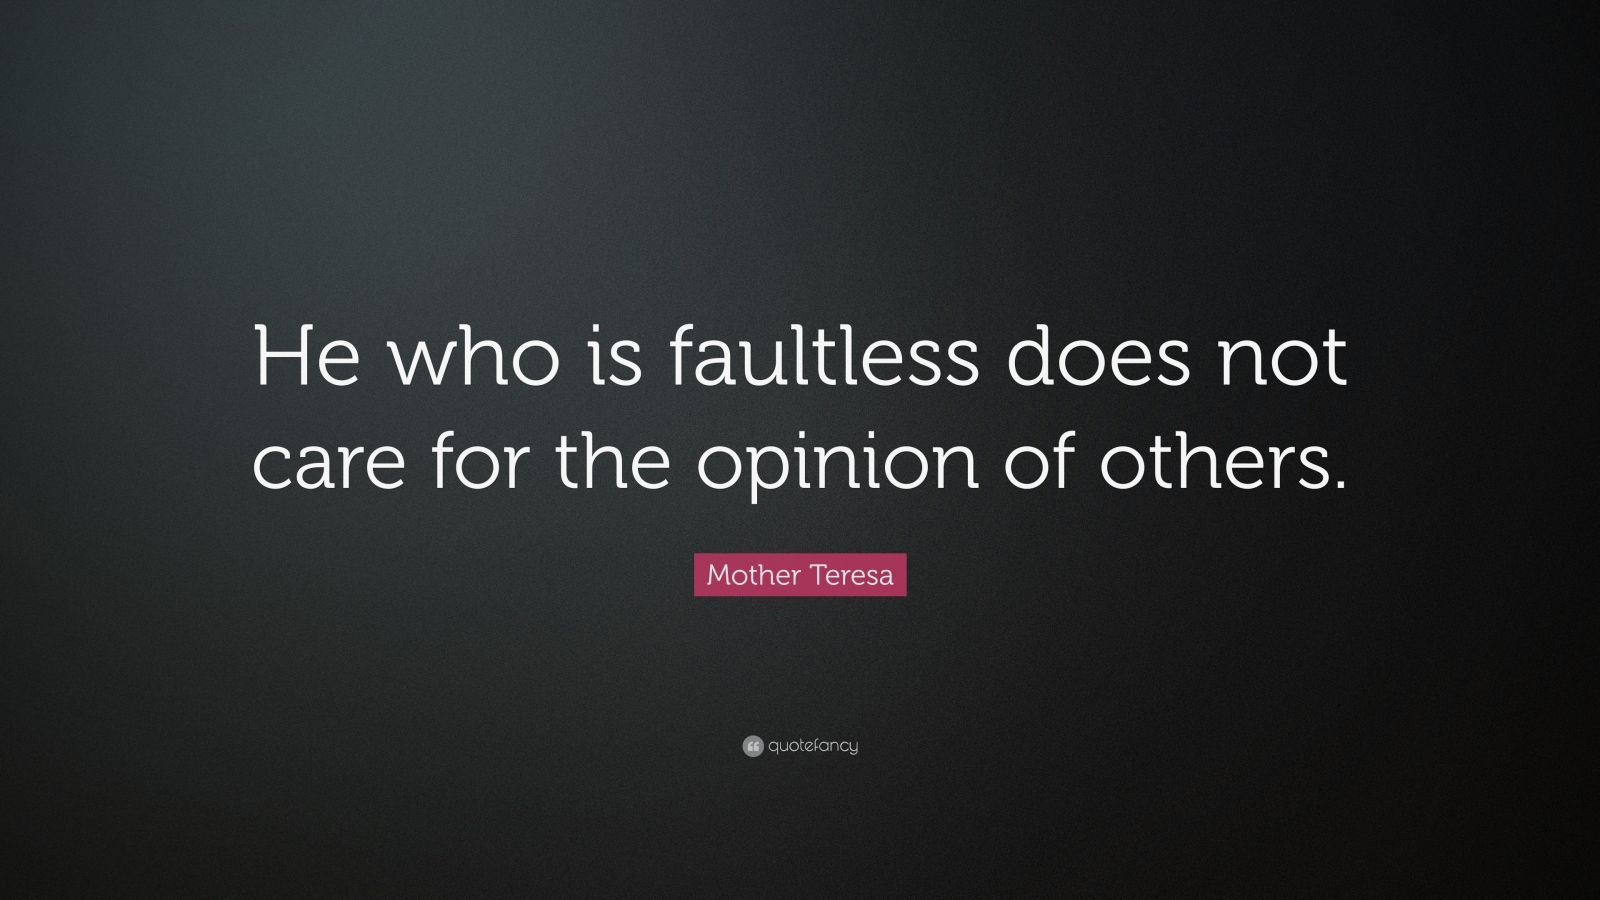 """Mother Teresa Quote: """"He who is faultless does not care for the opinion of others."""""""